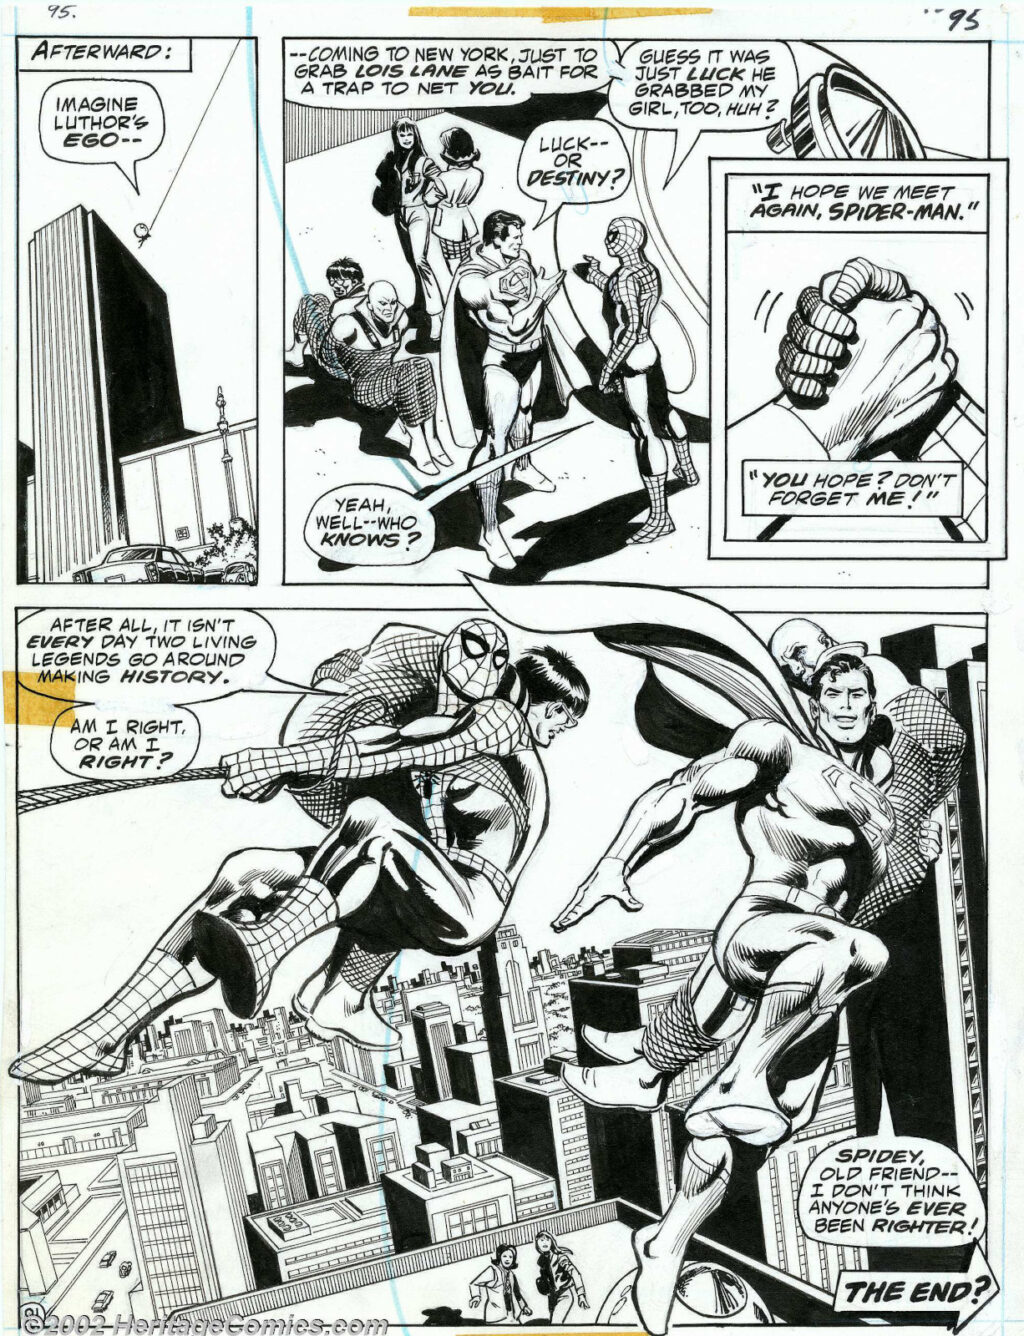 Superman vs. Spider Man page 91 by Ross Andru and Dick Giordano